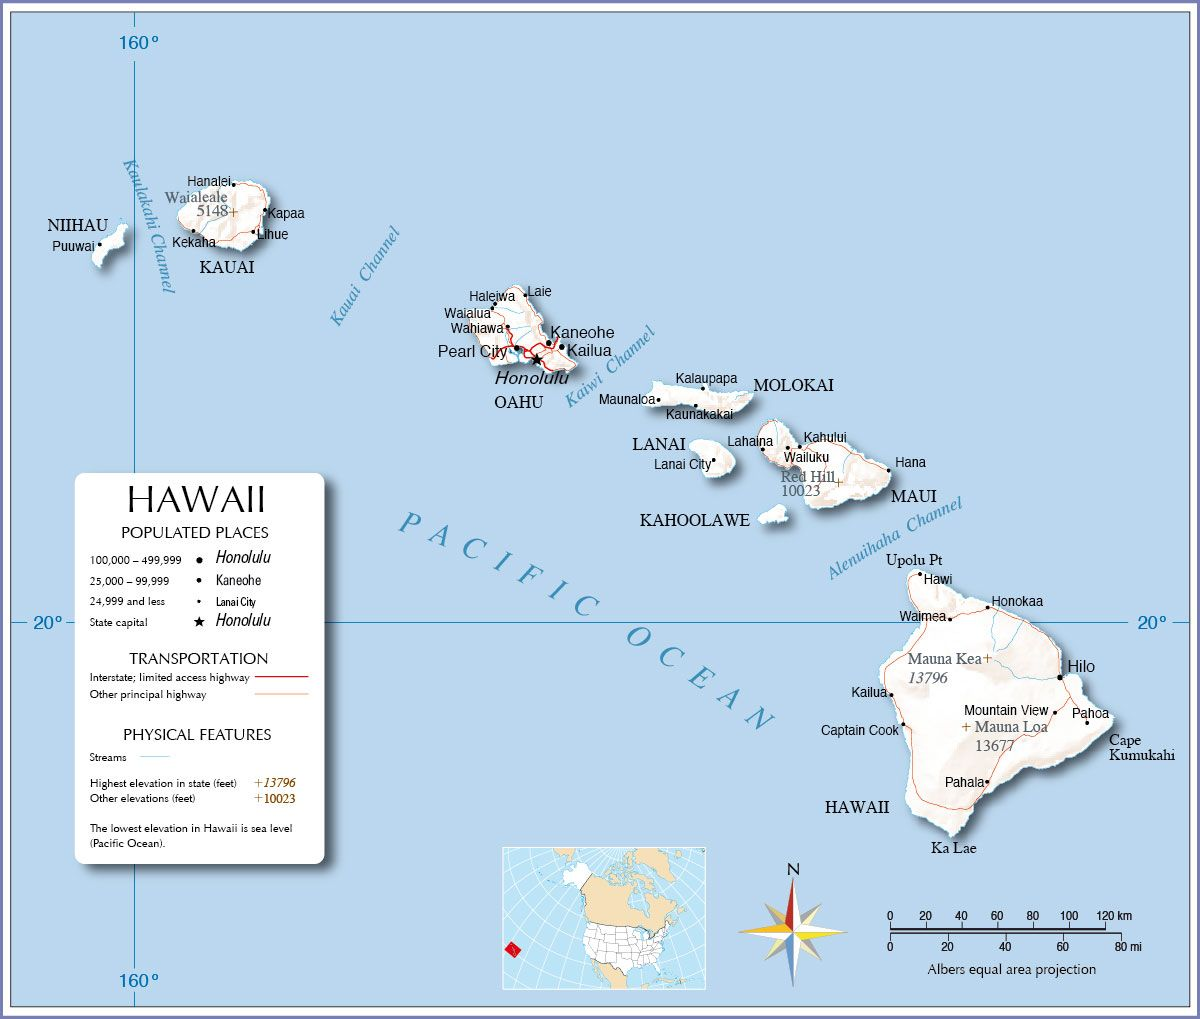 Maps Of Hawaii Provide Information On The Different Cities And - Hawaii cities map